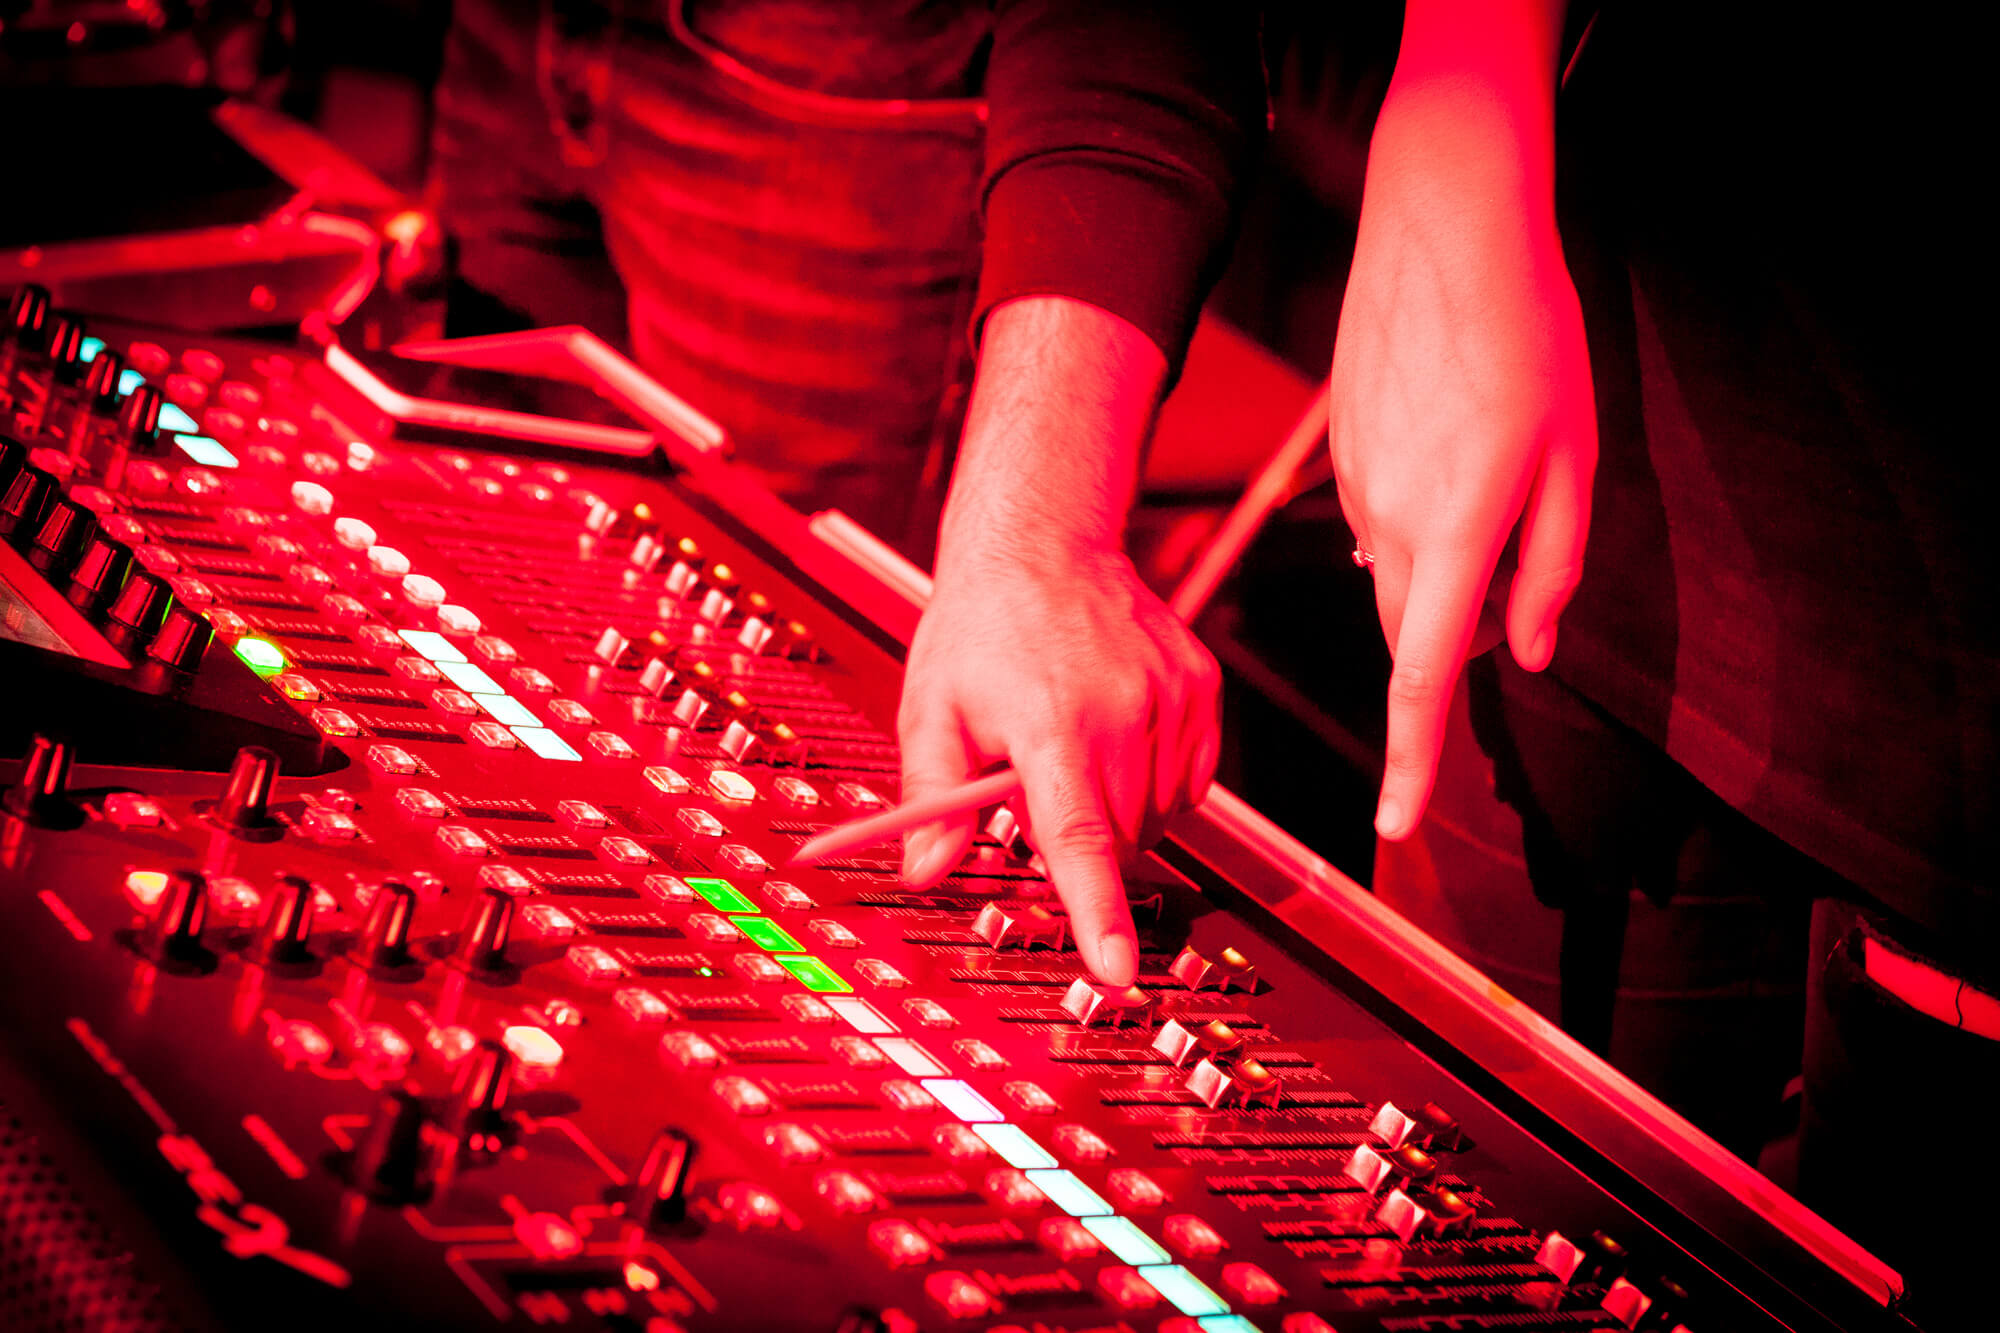 A close up photograph of some music production equipment